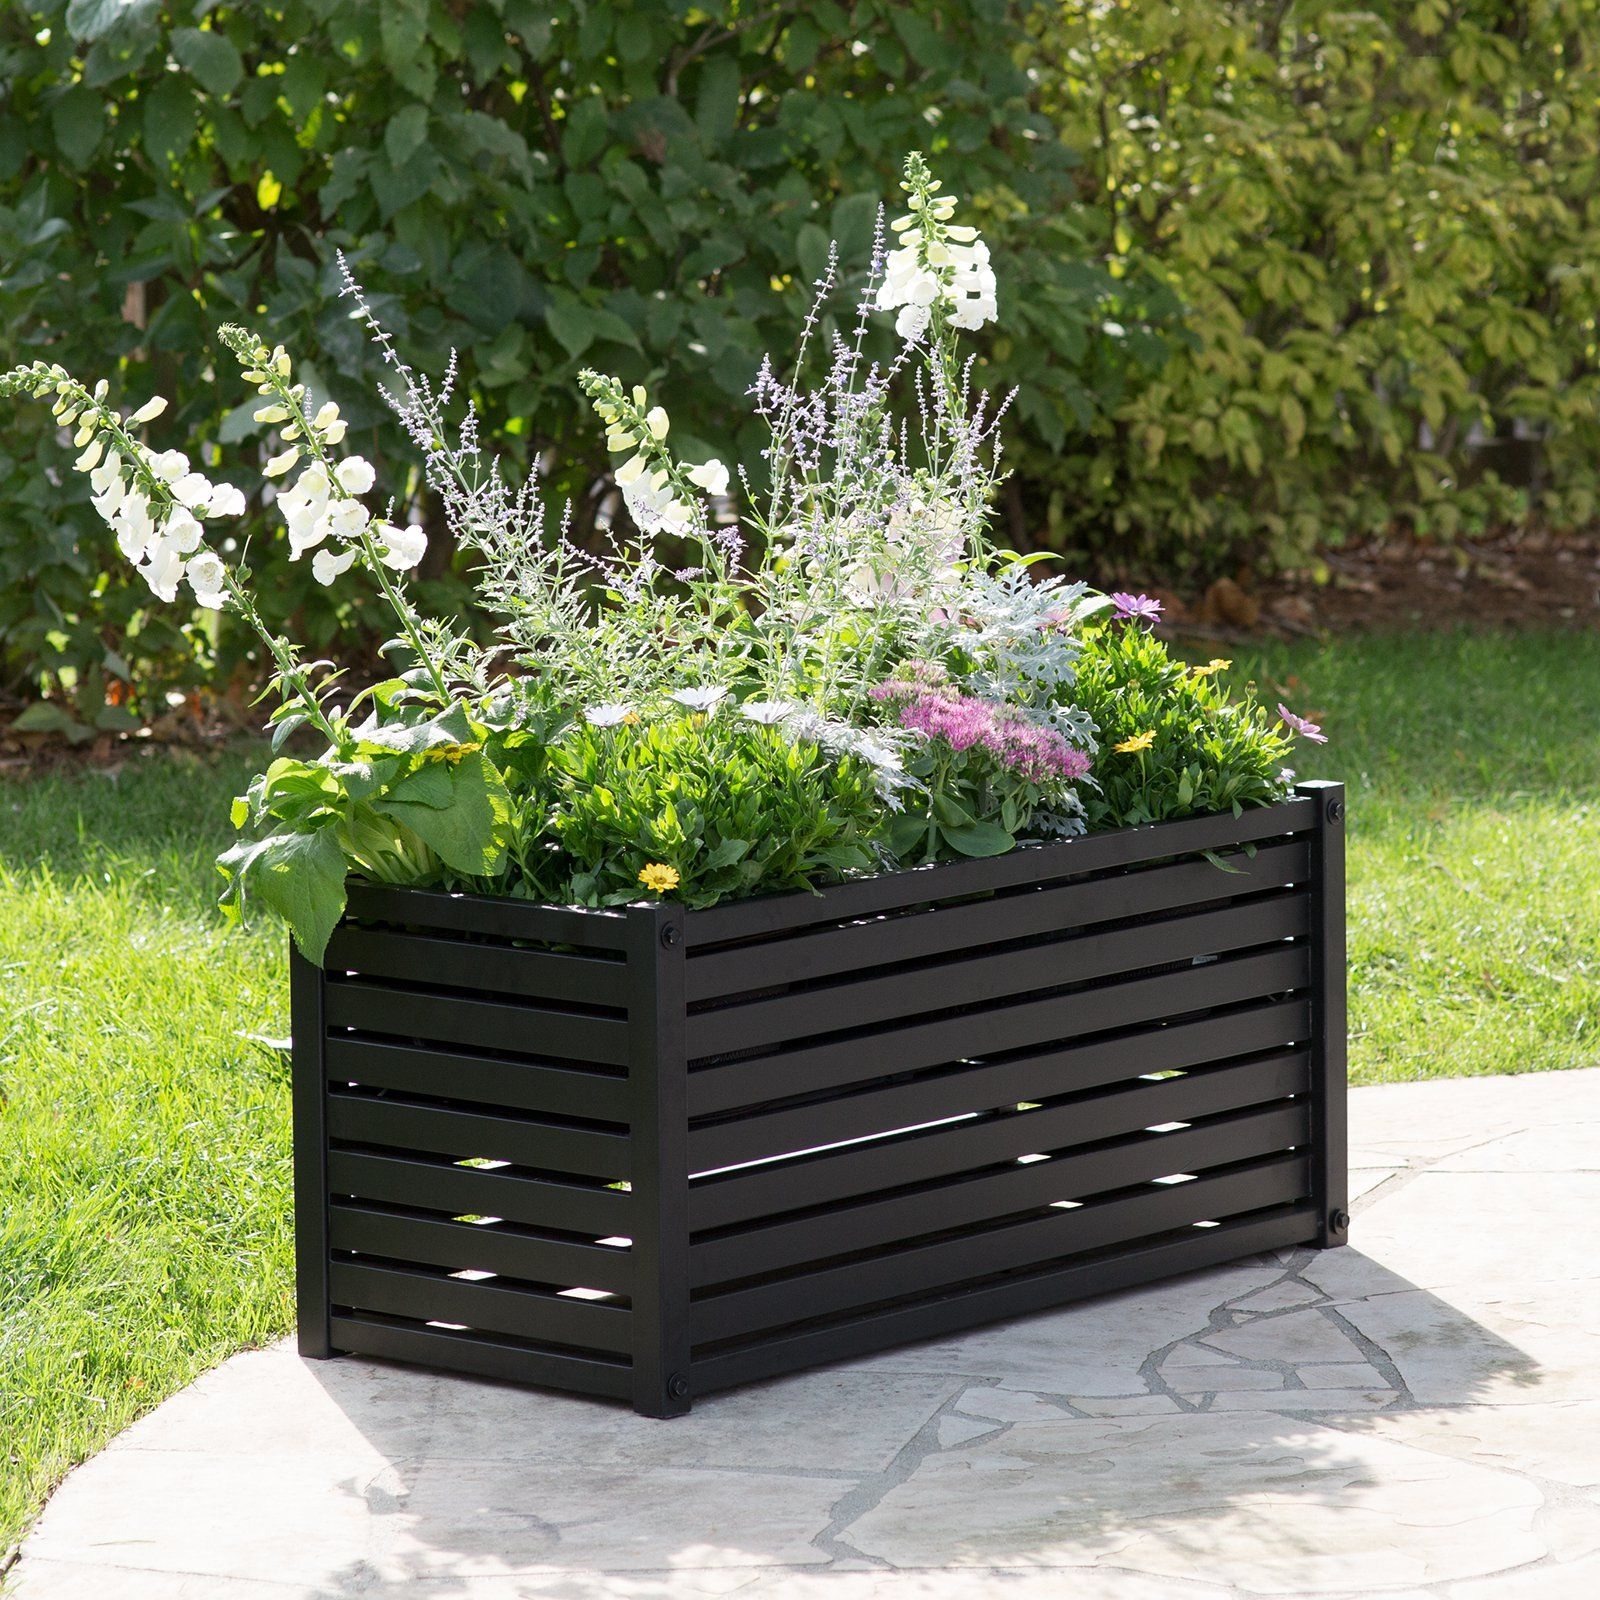 Belham living danbury planter rectangle your modern outdoor your modern outdoor space will thank you for the belham living danbury planter rectangle this metal rectangular planter comes in a classic workwithnaturefo